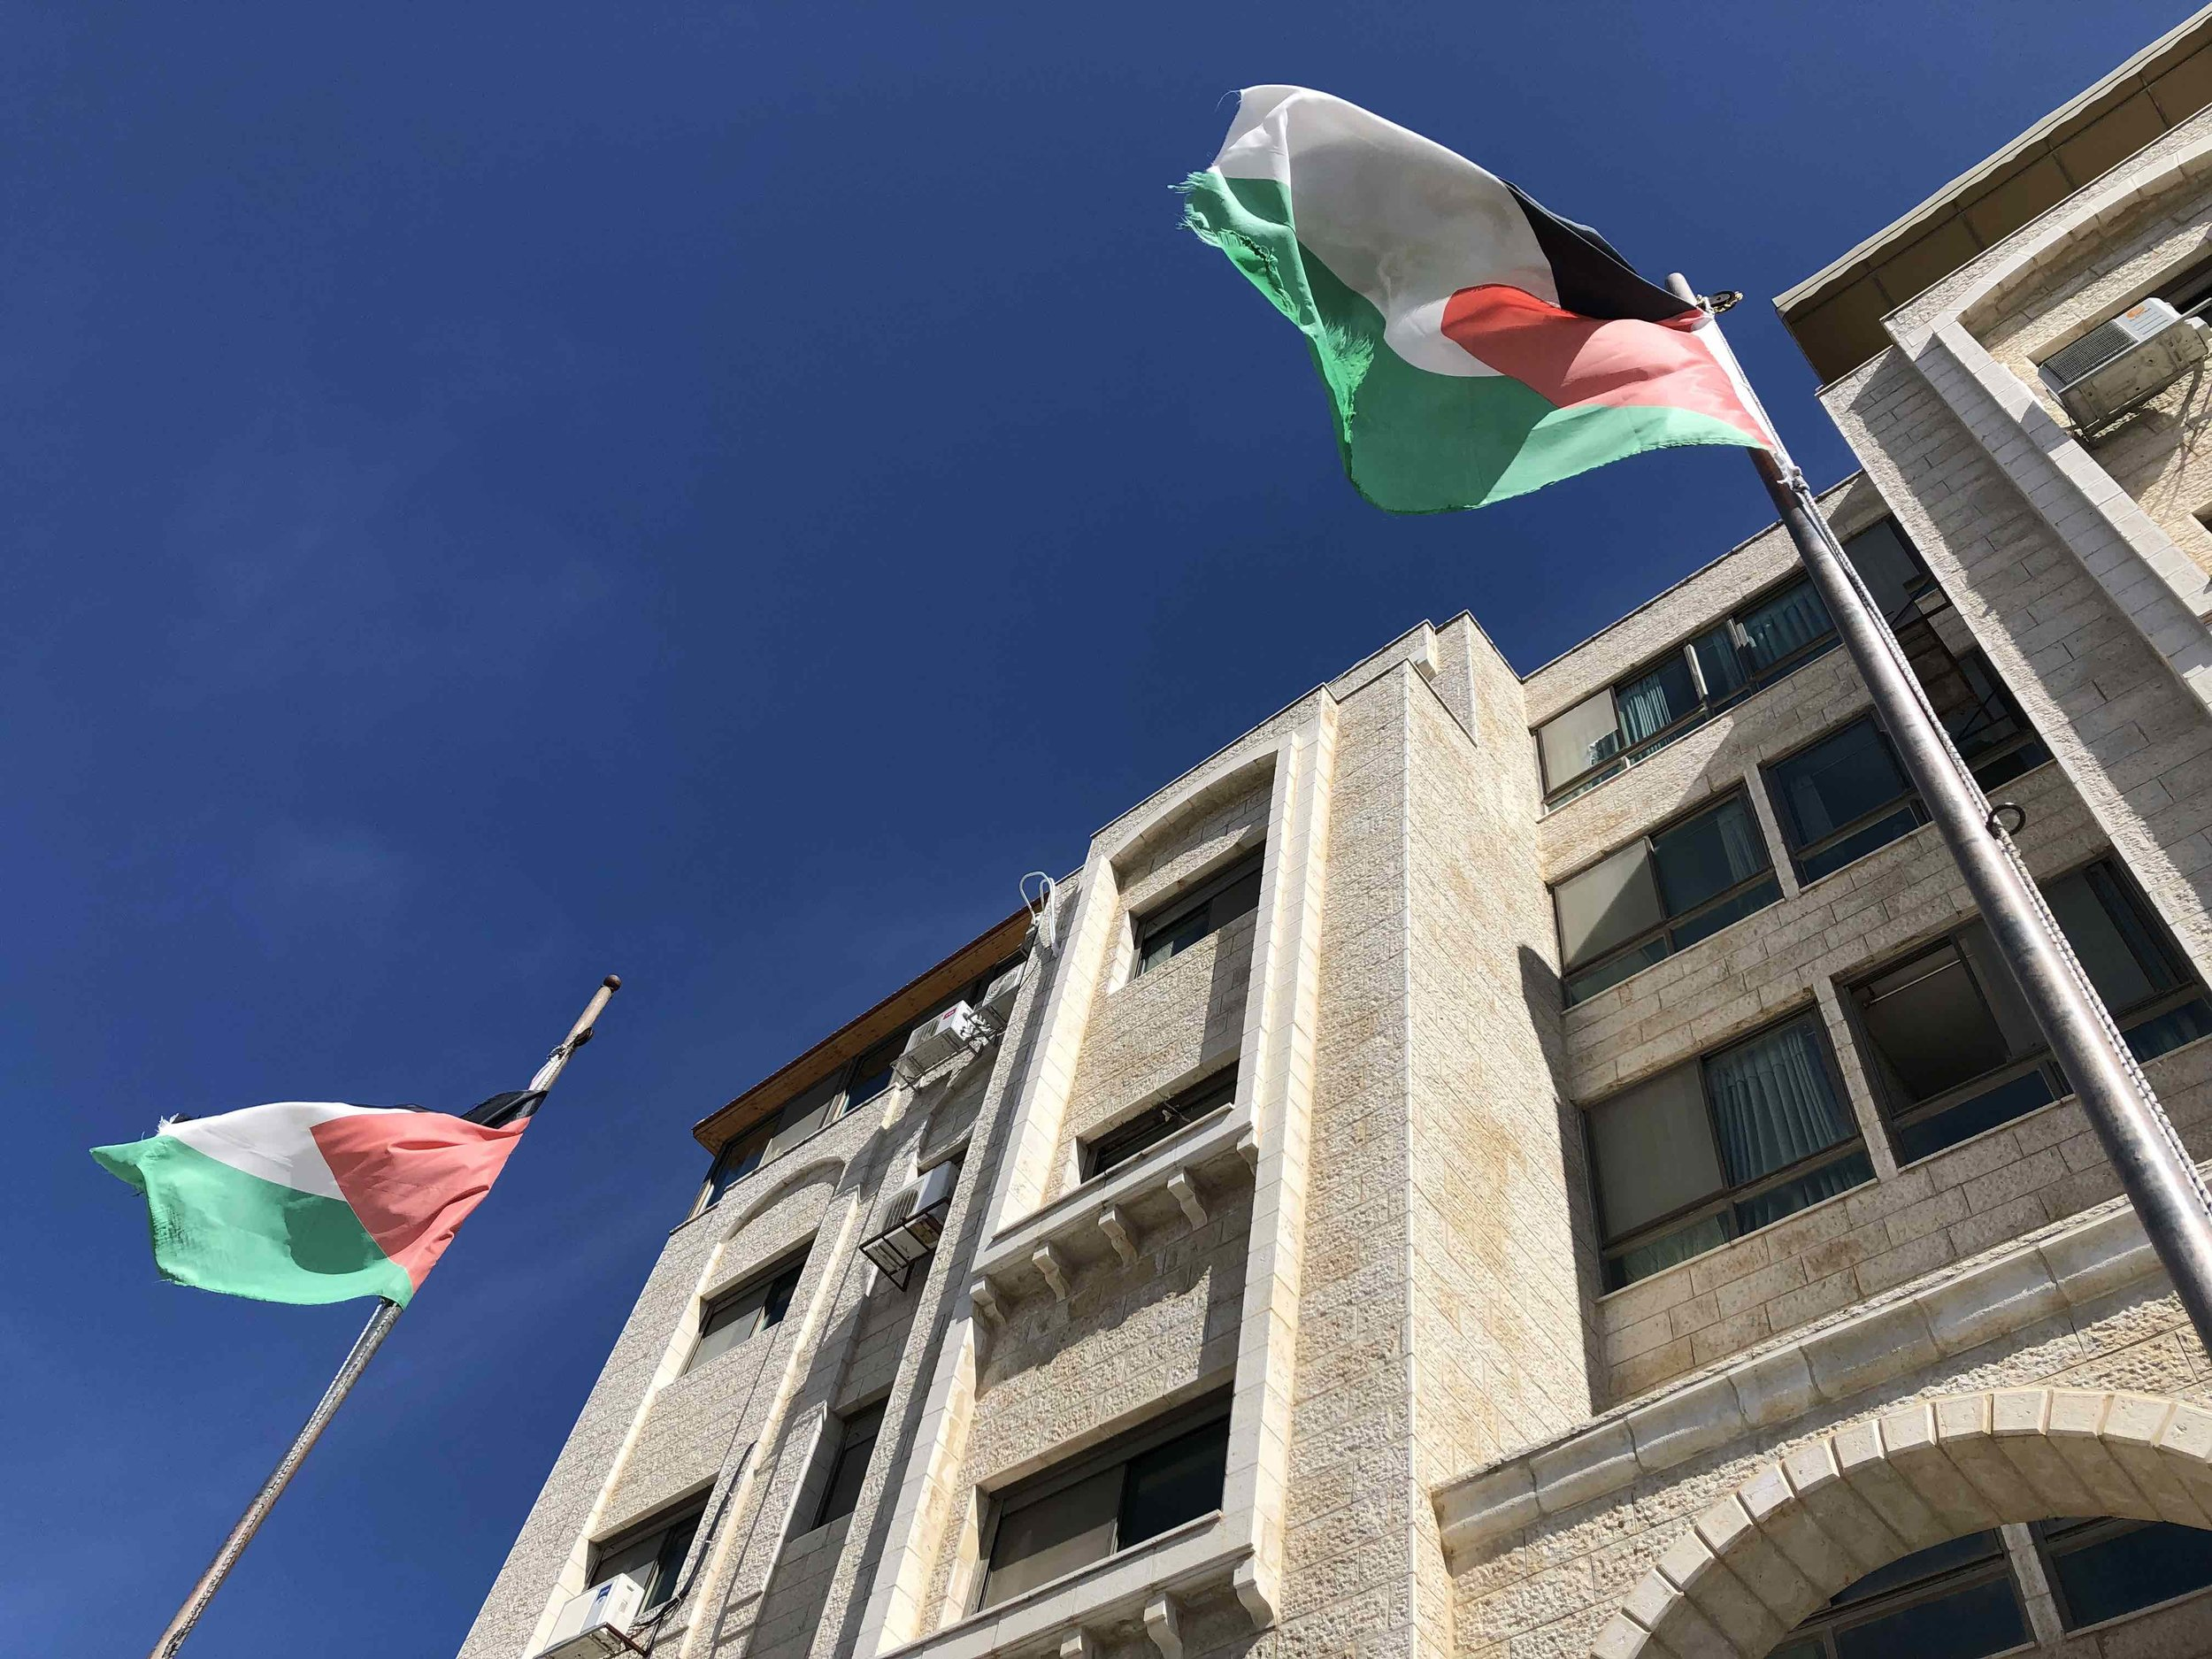 plo flags at offic smaller.jpg